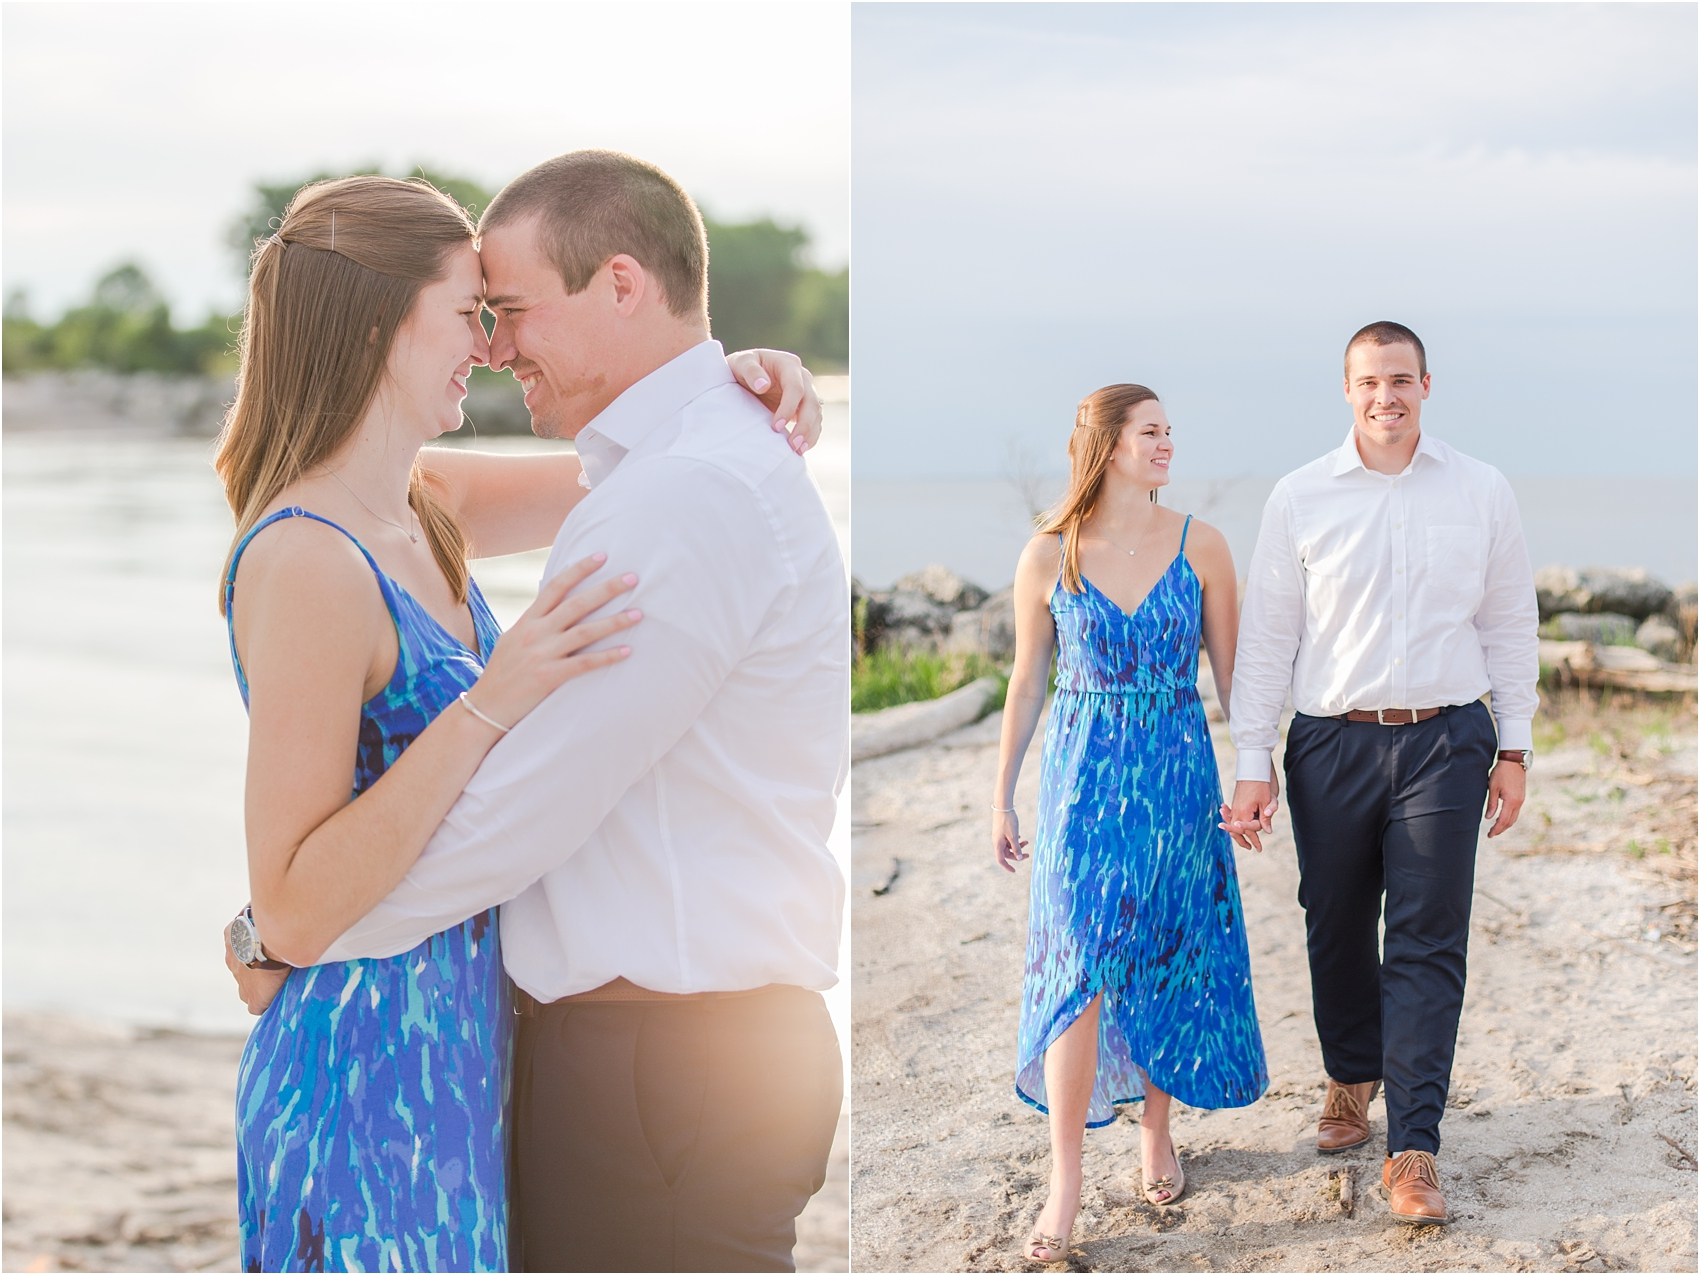 light-hearted-sunset-engagement-photos-at-the-beach-in-oregon-oh-by-courtney-carolyn-photography_0030.jpg